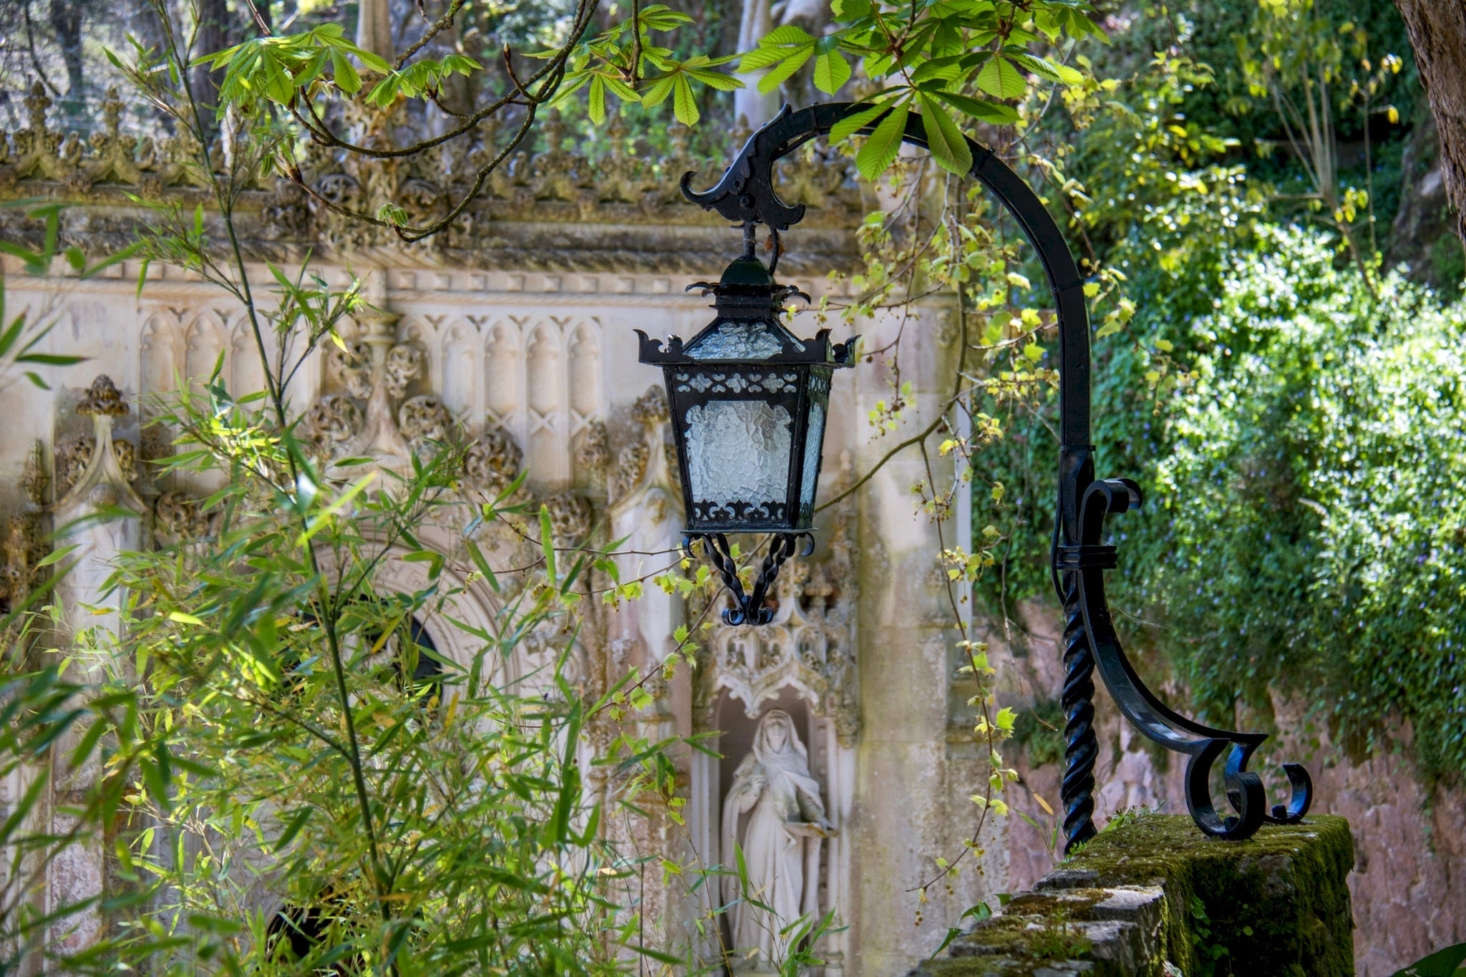 A monochromatic green backdrop adds drama to an ornate wrought iron lantern at the Quinta da Regaleira estate in Sintra. Photograph by Susanne Nilsson via Flickr.